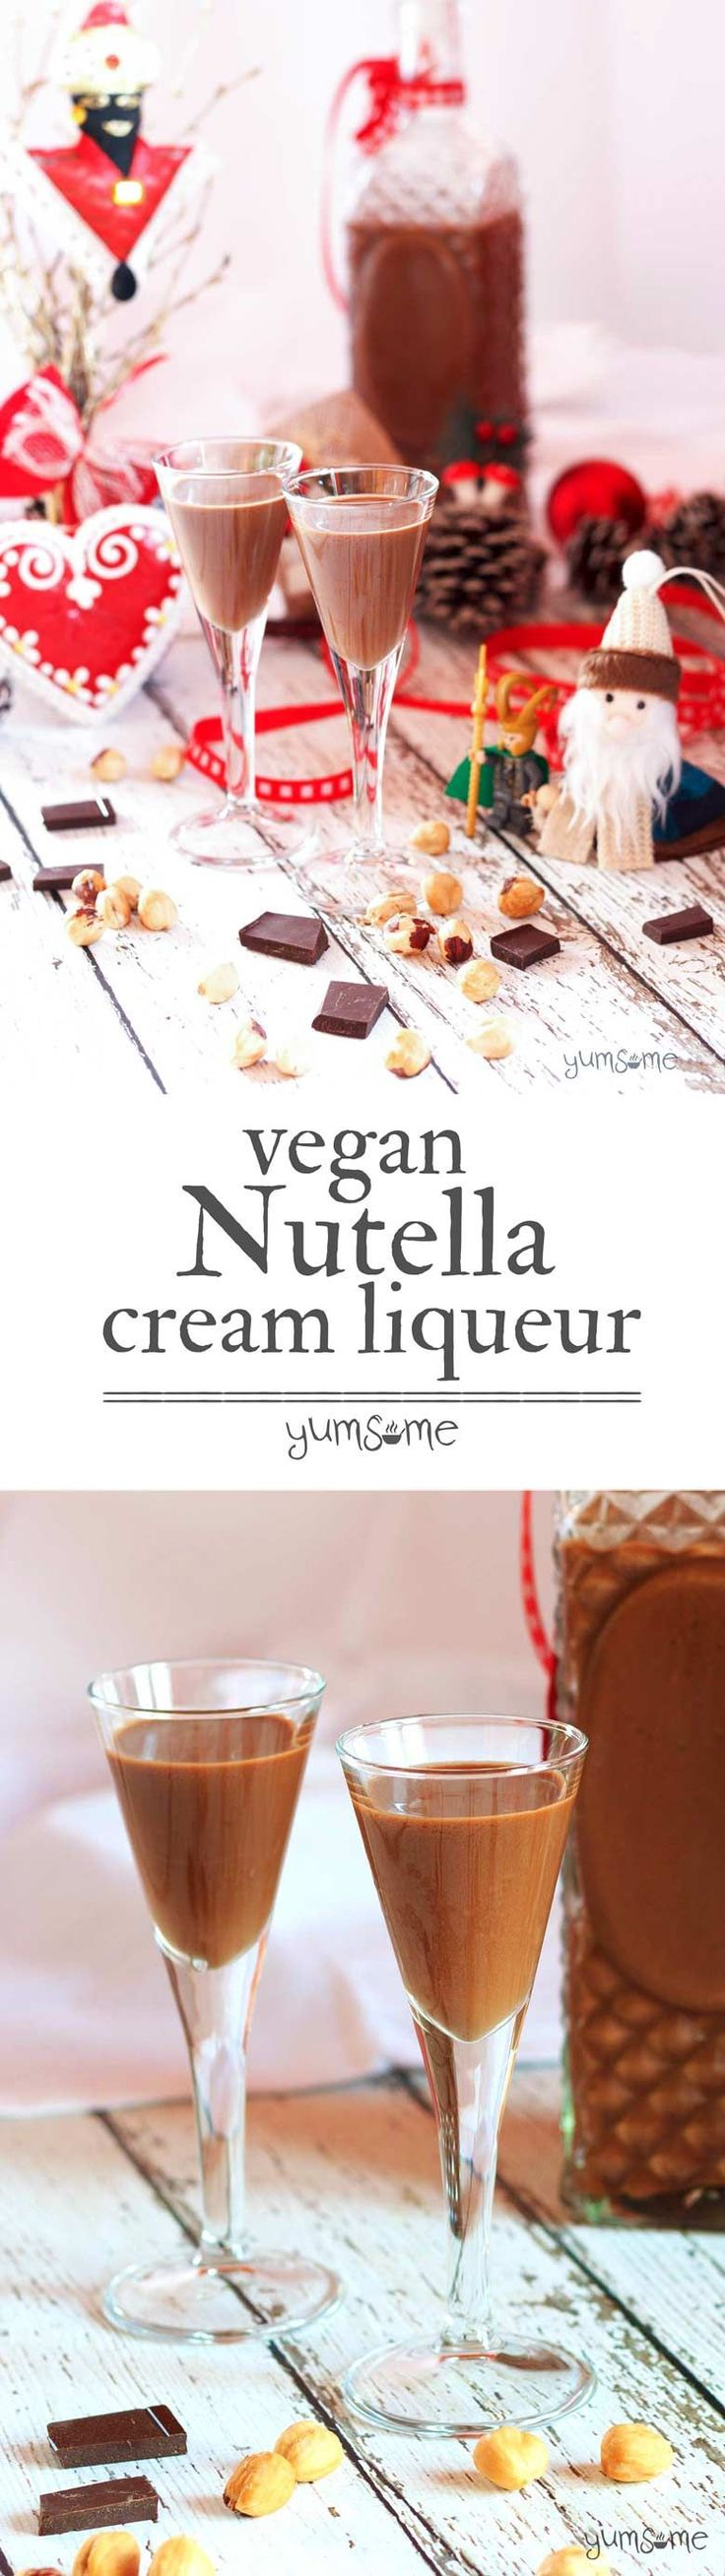 Home-made #vegan #Nutella cream #liqueur. Oh. My. Glob. | yumsome.com